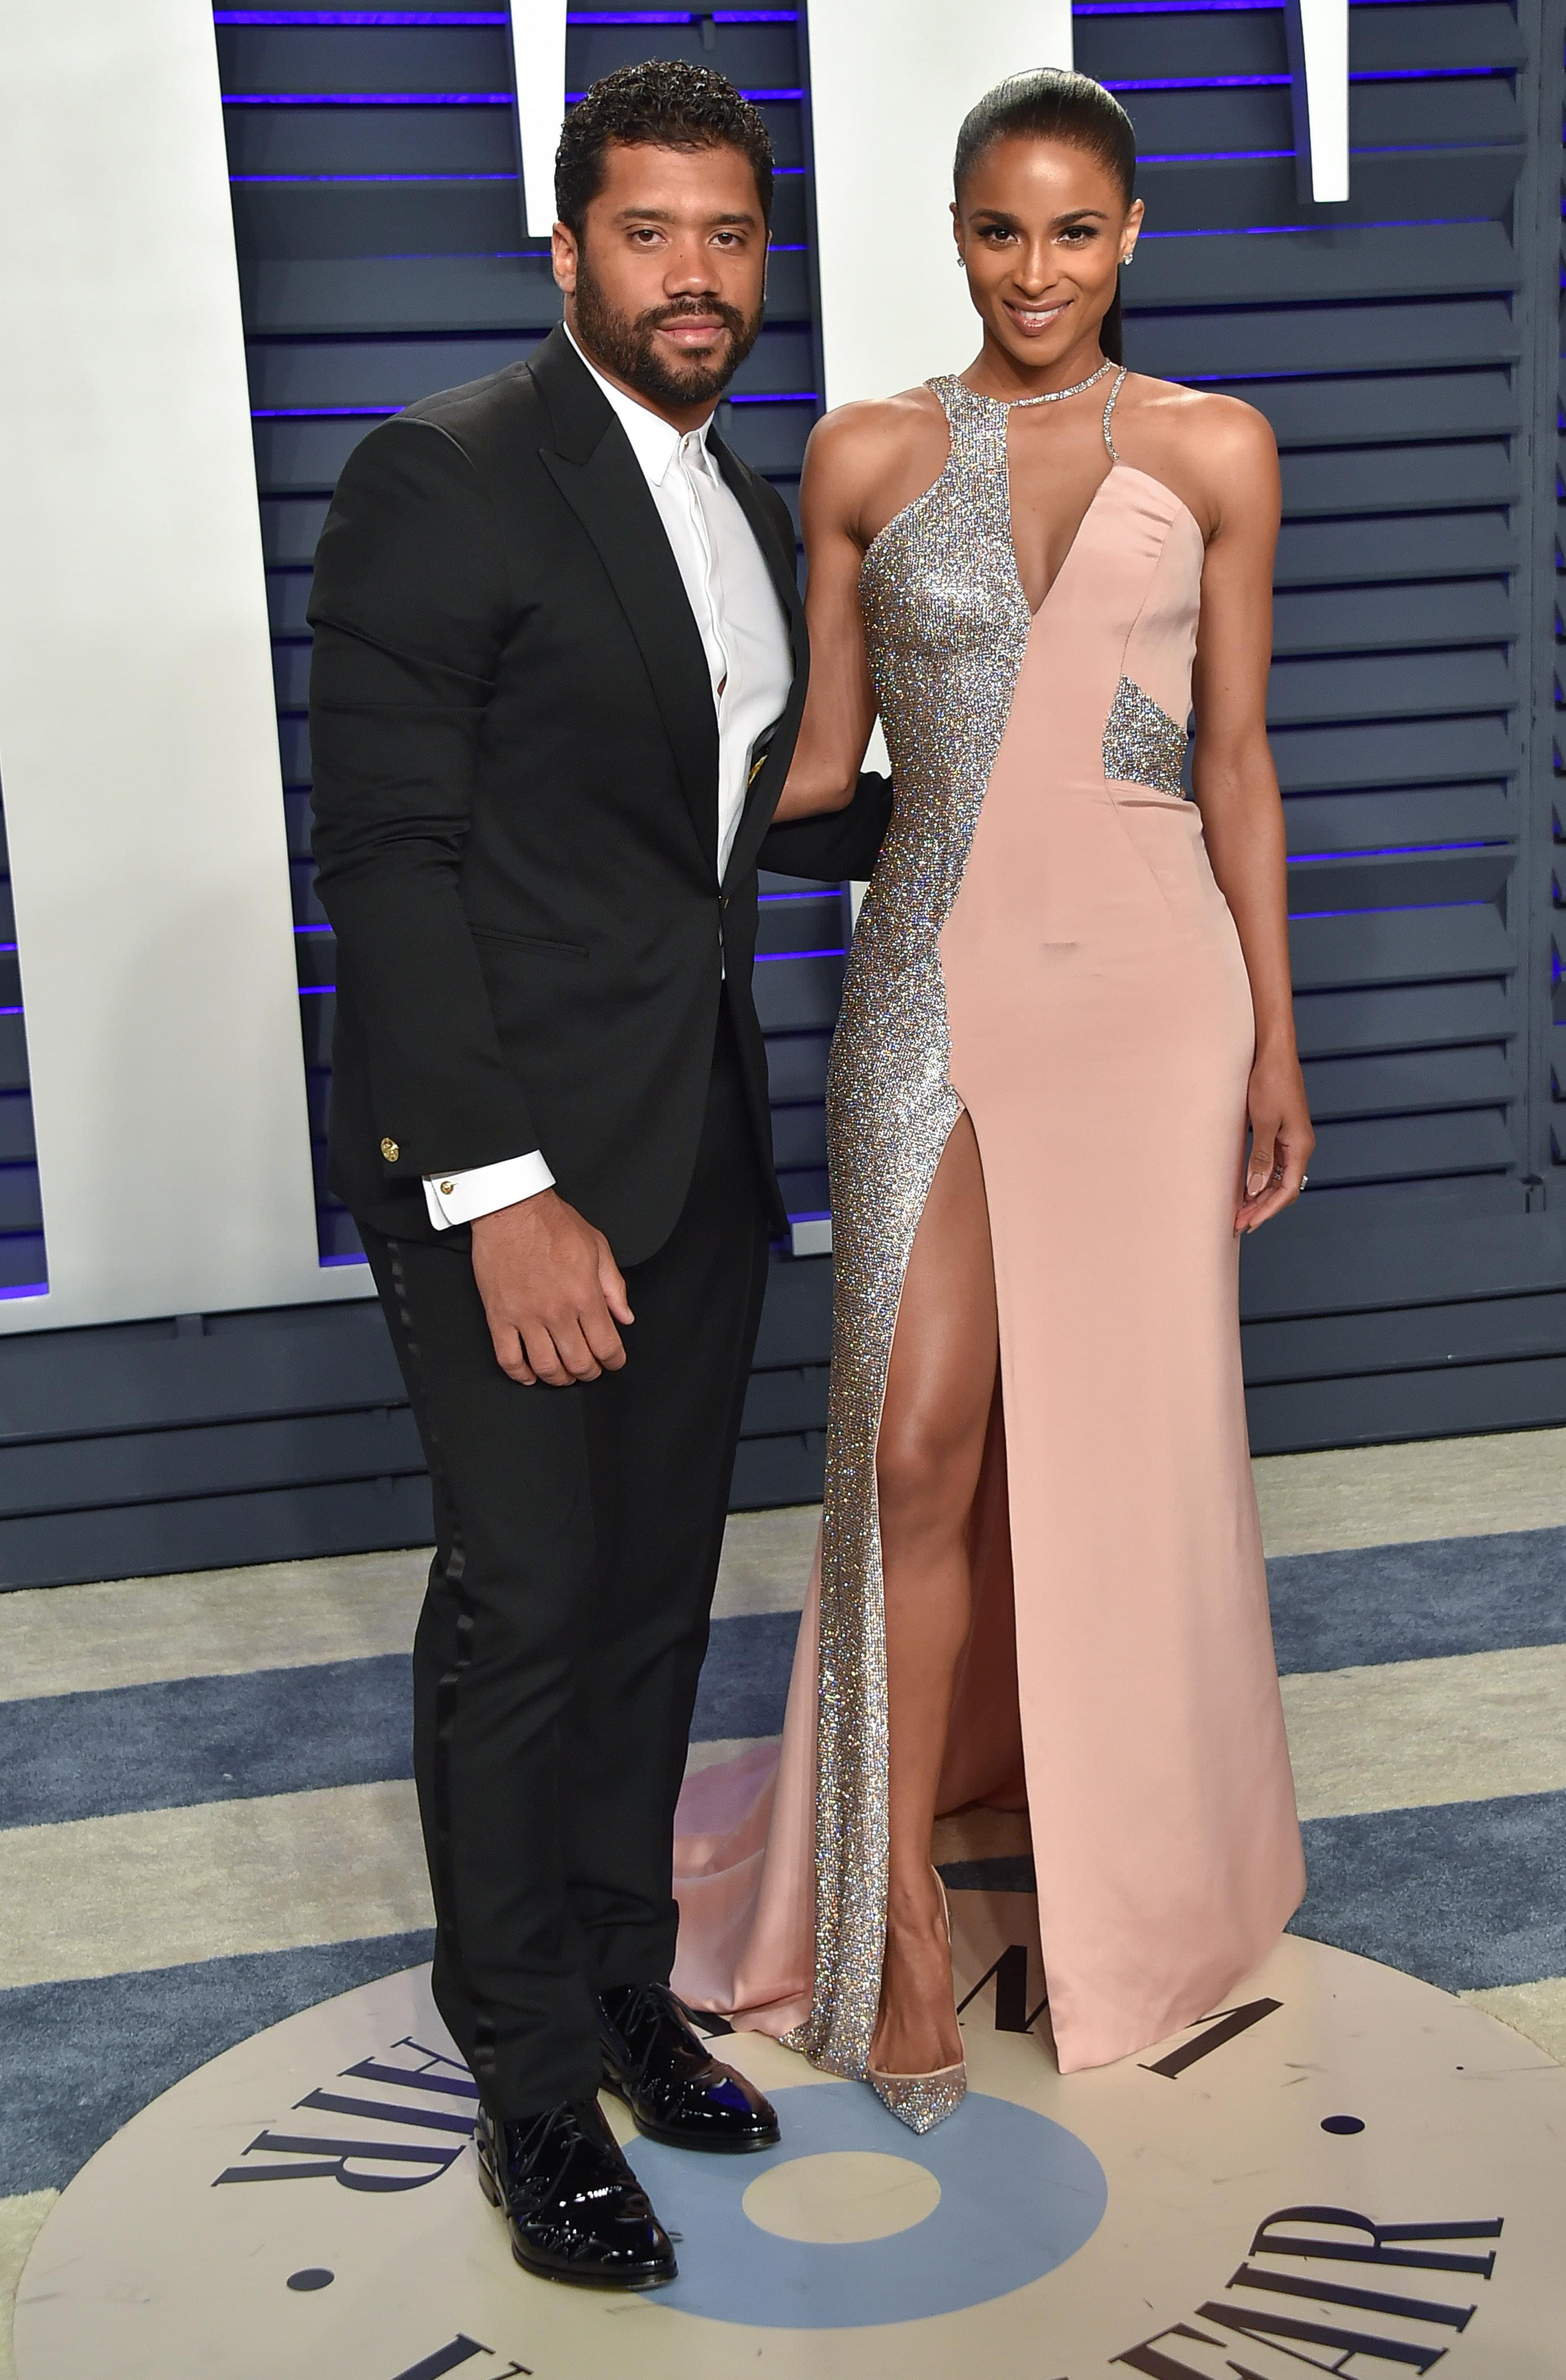 Power Moves: CiCi and Russ at it Again!